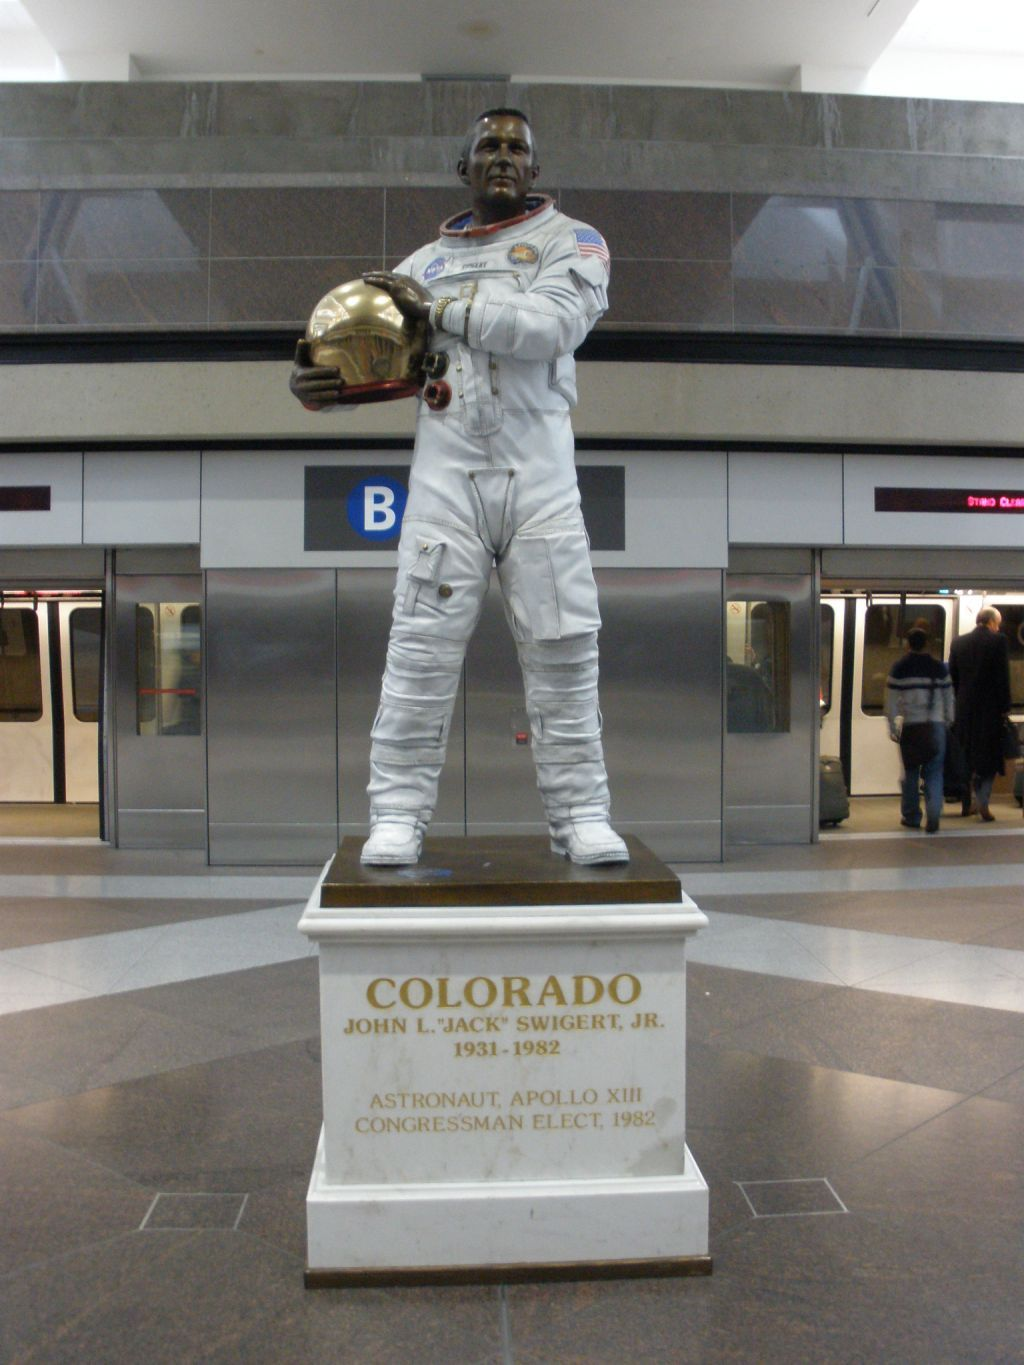 apollo writework english statue of apollo 13 astronaut jack swigert by mark lundeen at concourse b